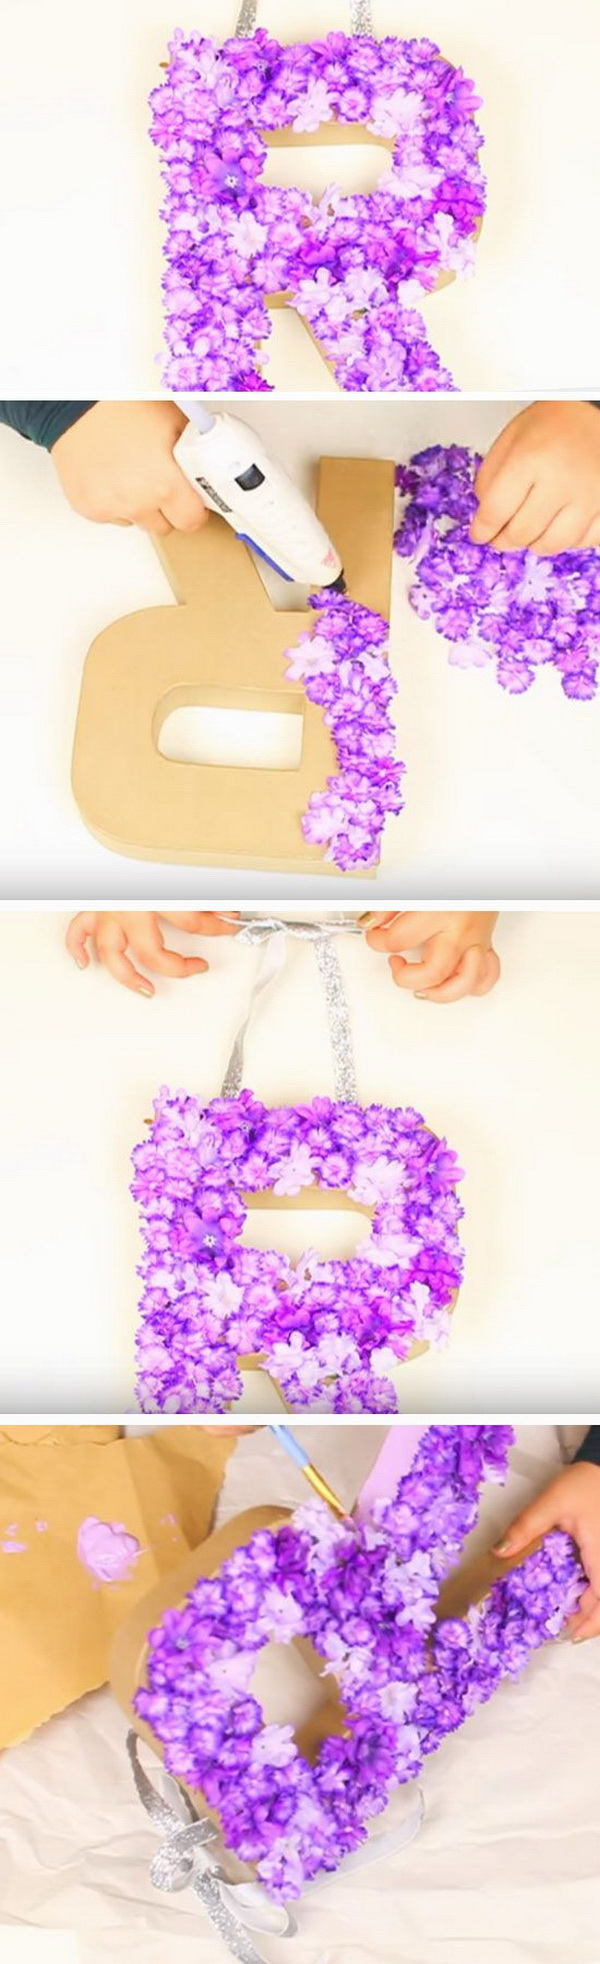 20 pretty diy decorative letter ideas tutorials for Summer craft ideas for adults